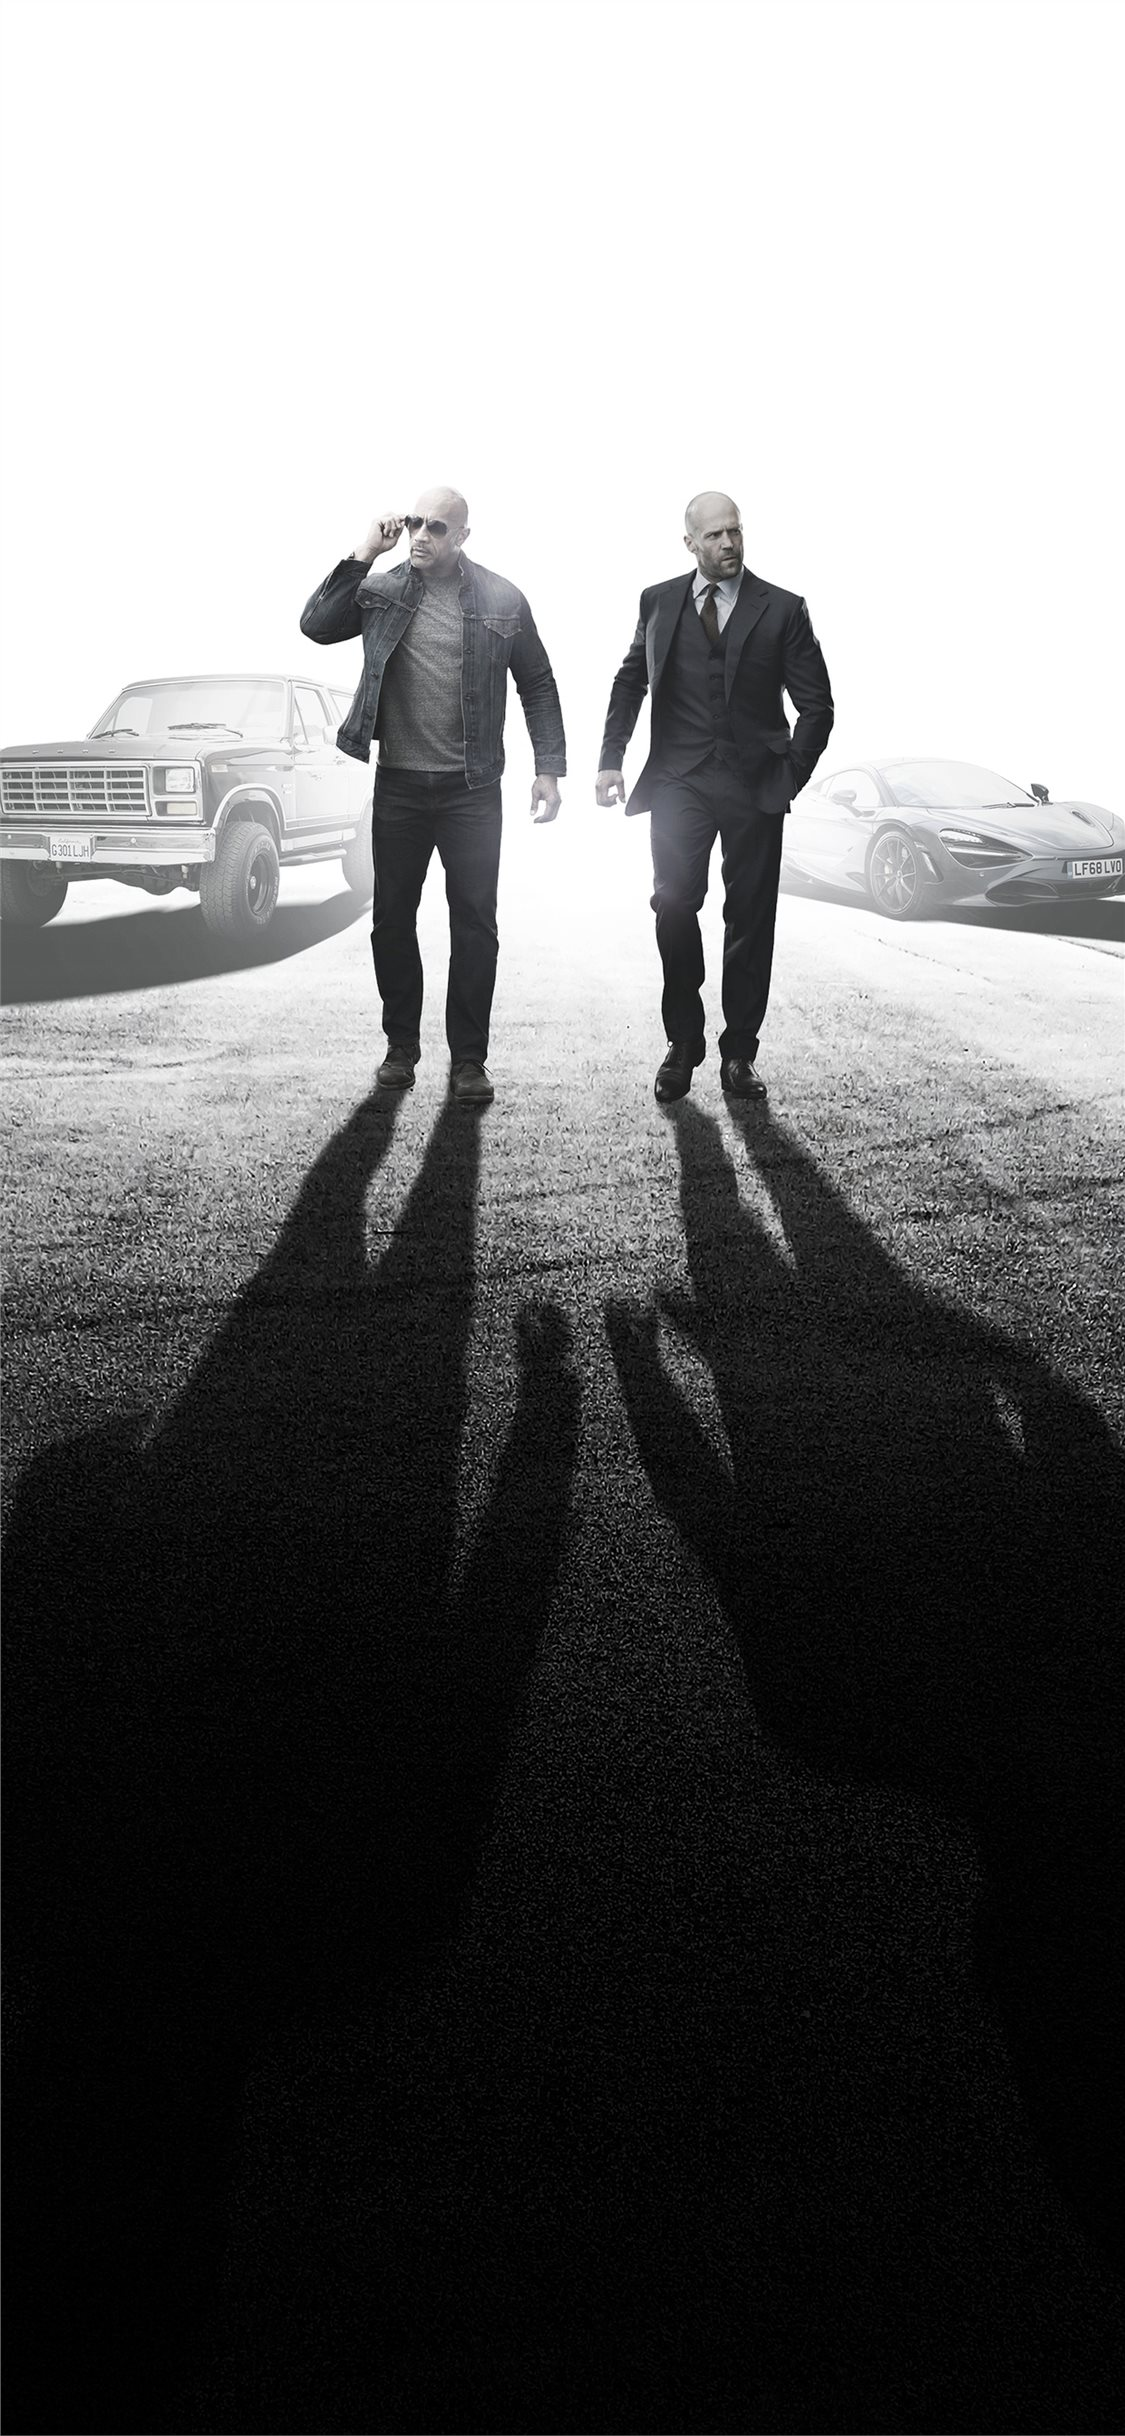 Hobbs And Shaw 4k Imax Iphone X Wallpapers Free Download